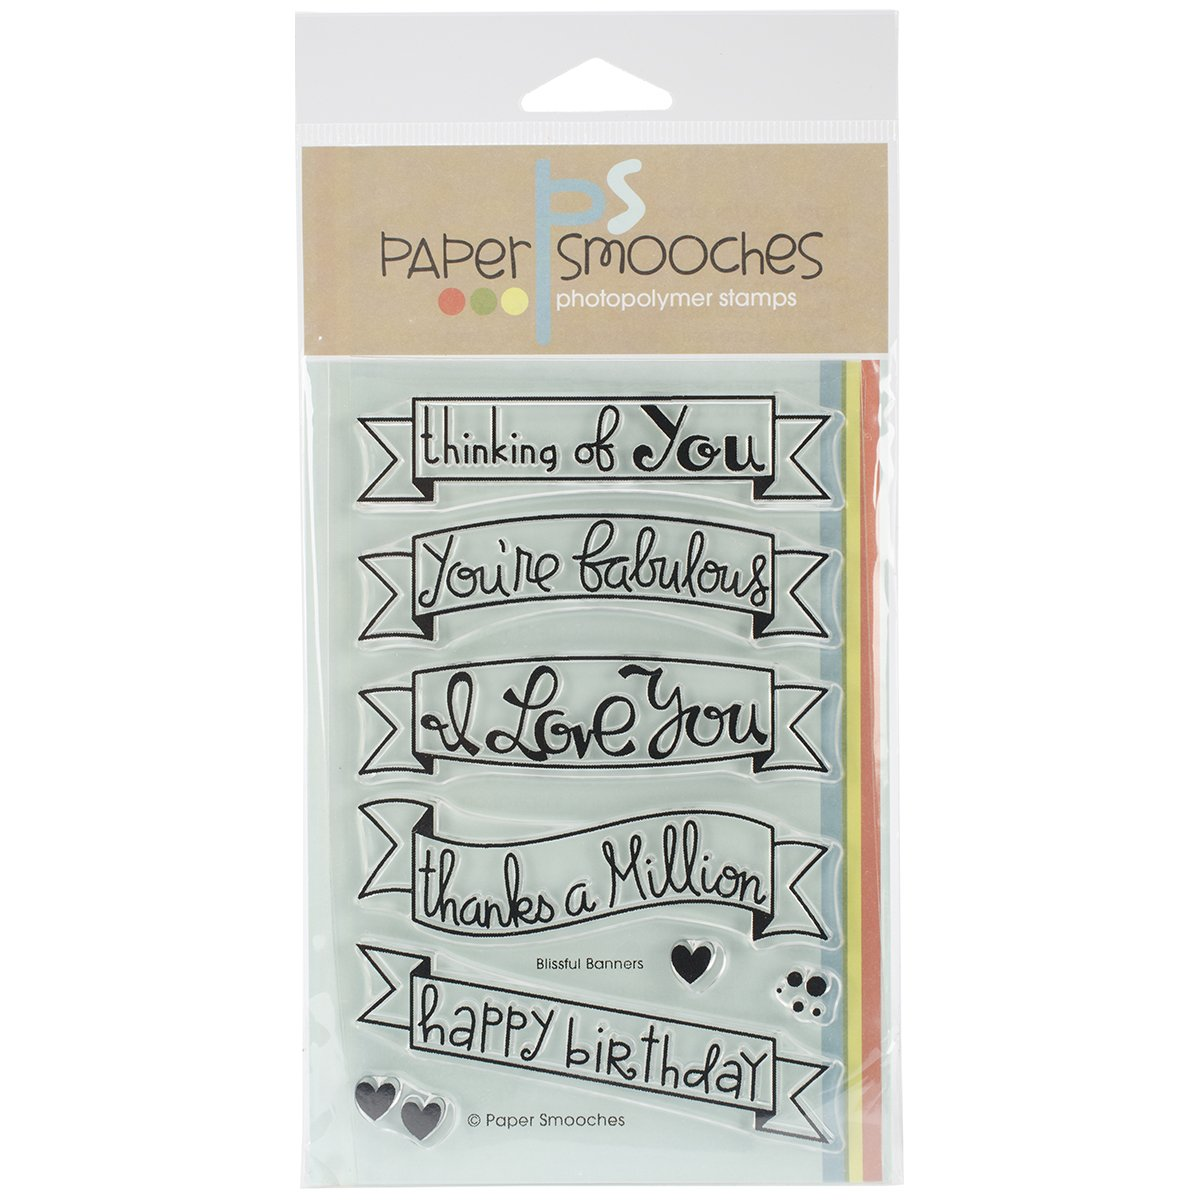 Paper Smooches Rubber 4-inch x 6-inch Clear Stamps-Blissful Banners J2S213